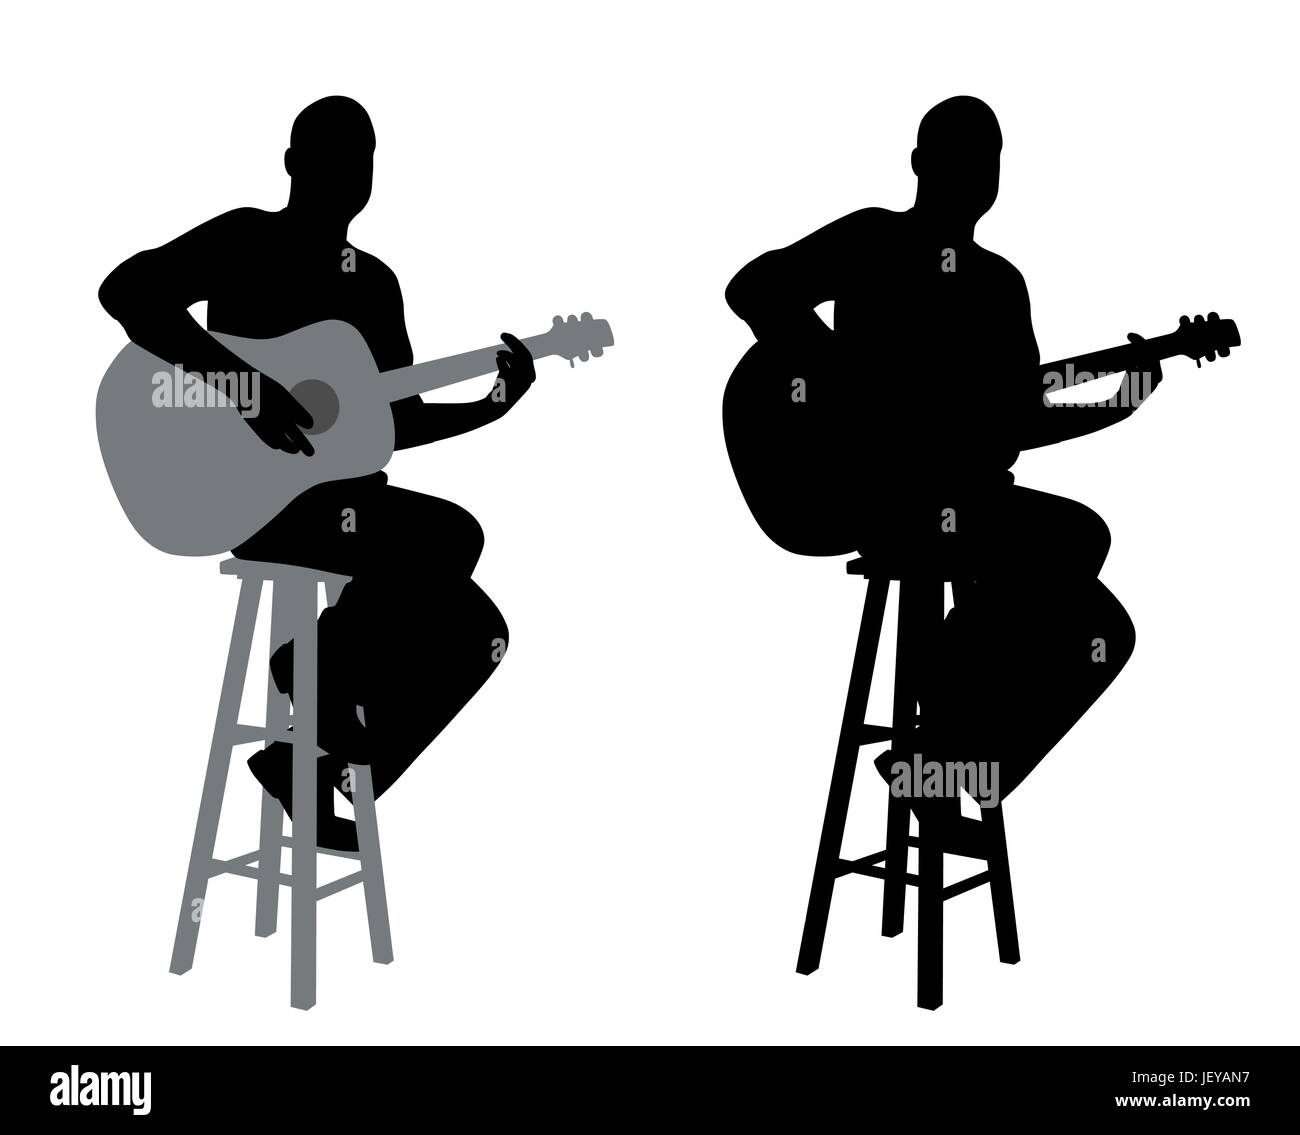 Guitar player sitting on a bar stool playing acoustic guitar  sc 1 st  Alamy & Guitar player sitting on a bar stool playing acoustic guitar Stock ... islam-shia.org